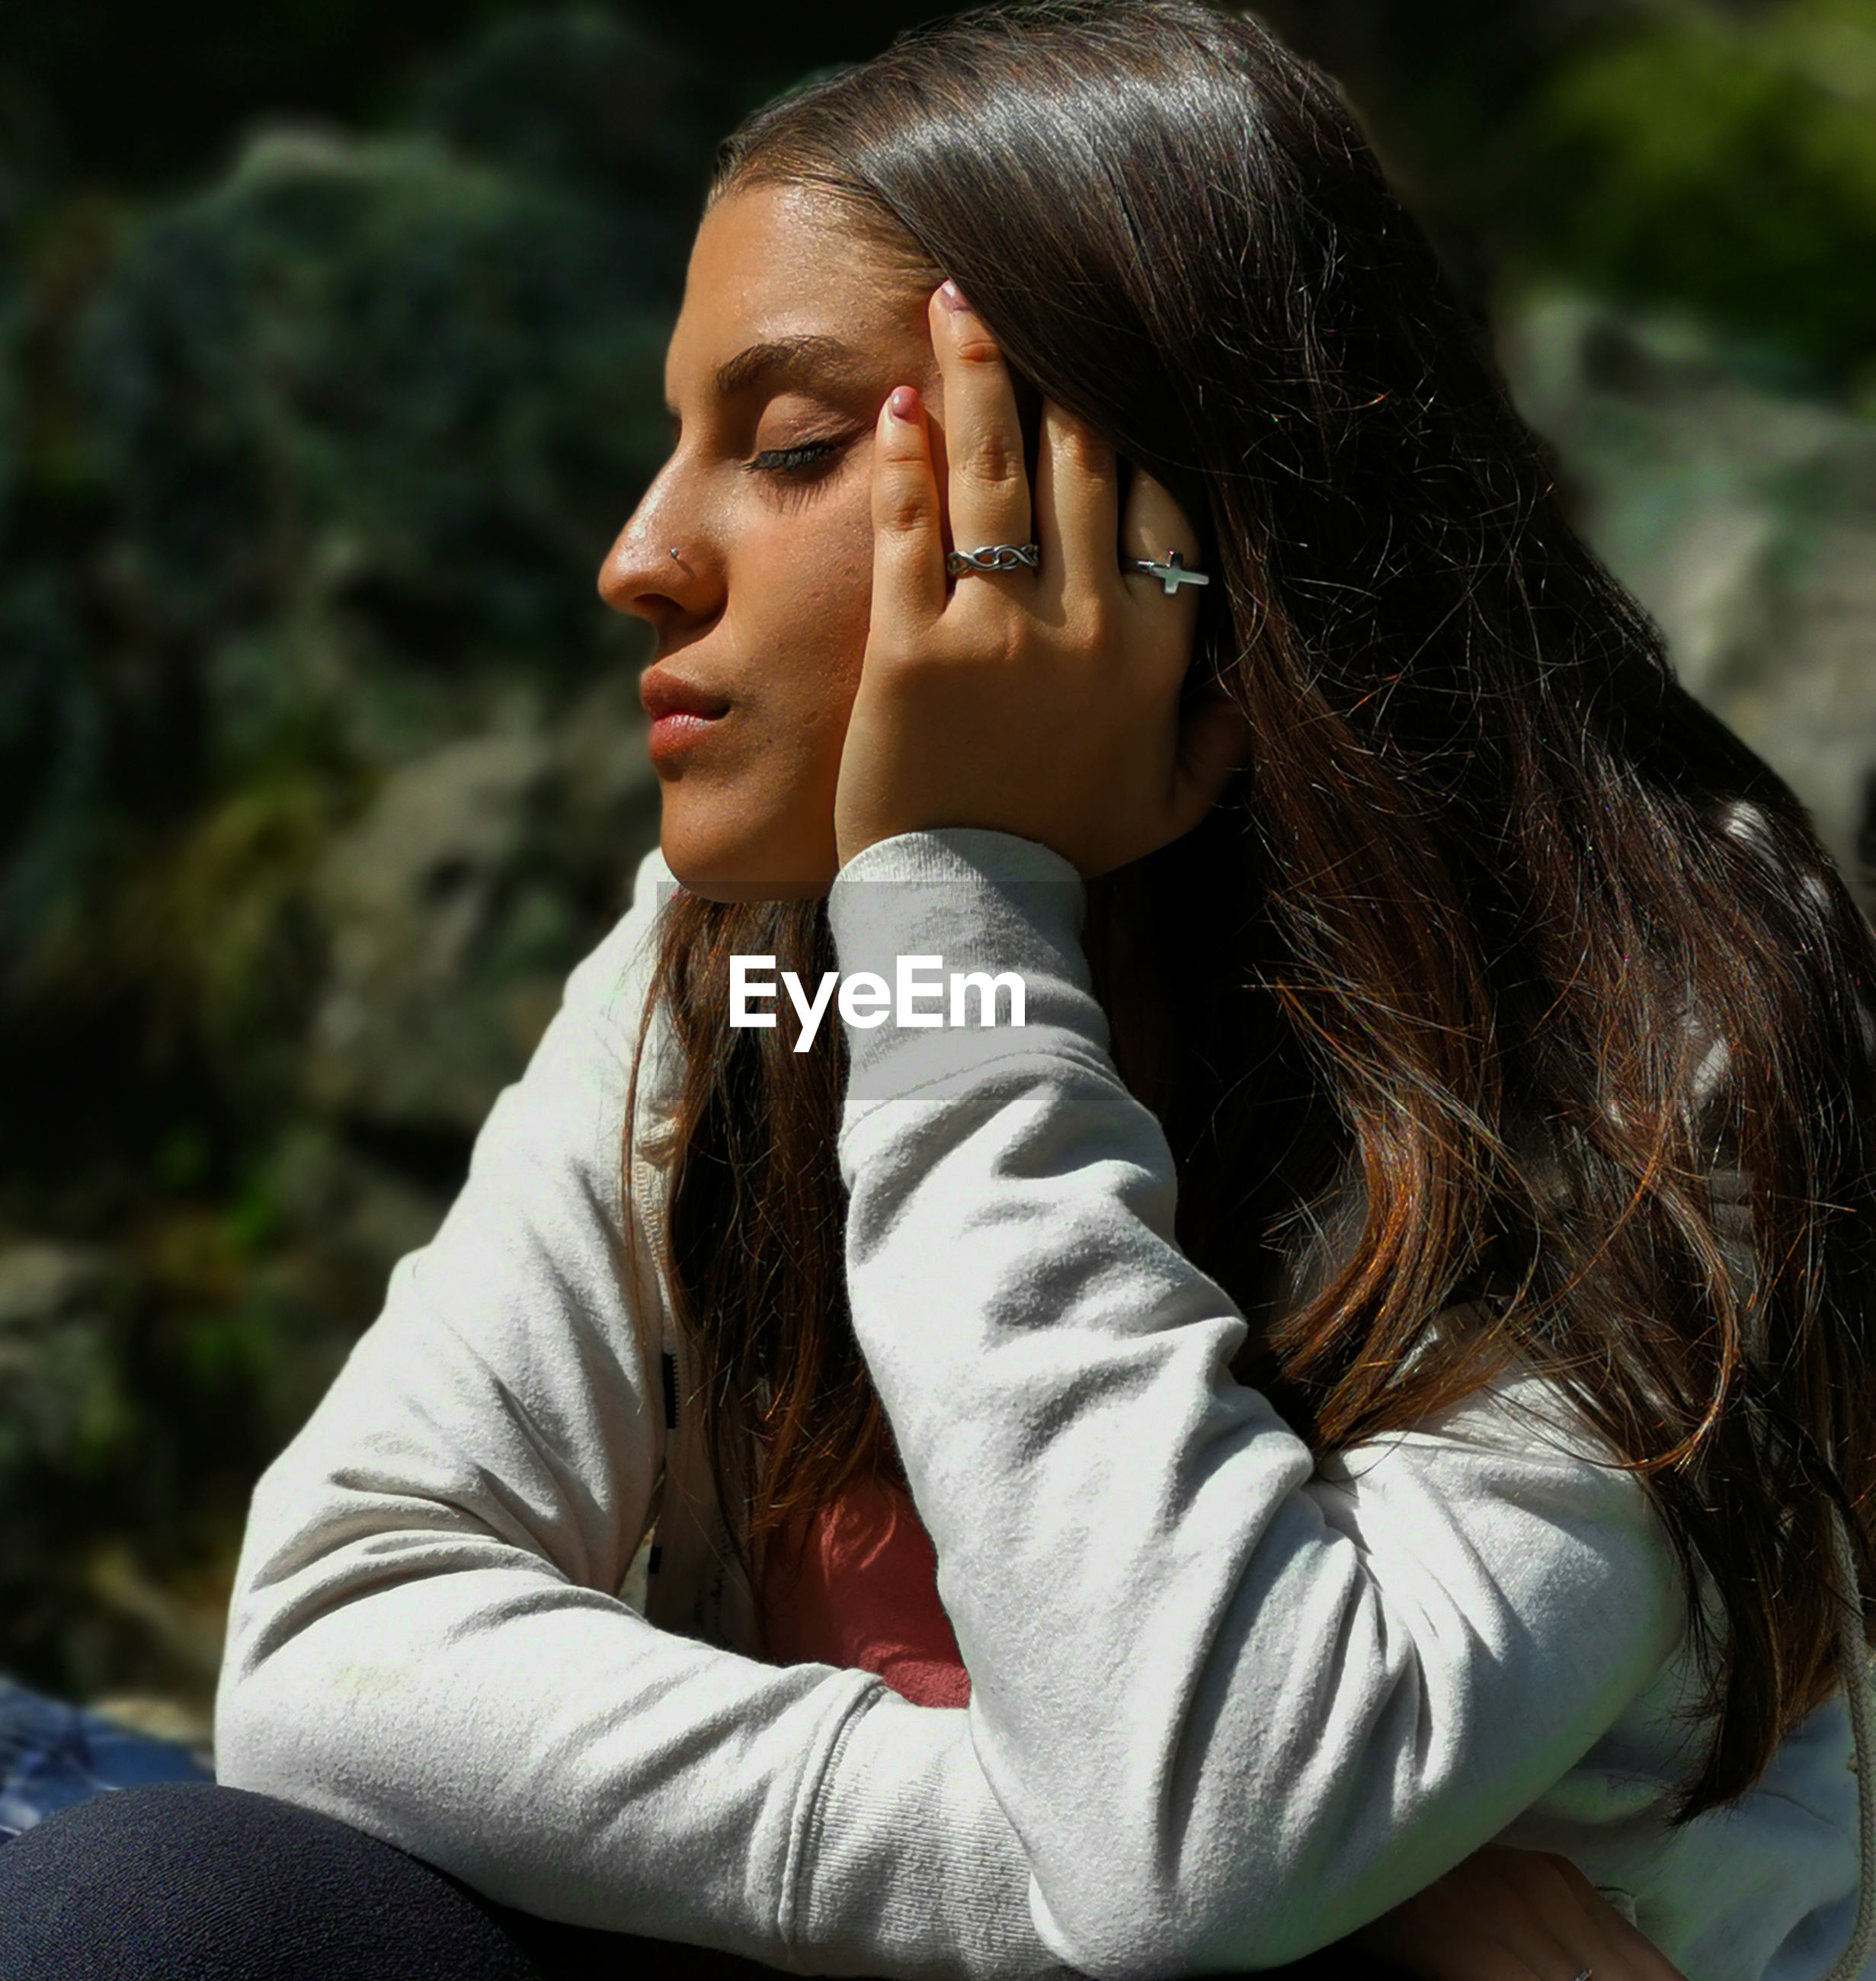 Young woman with eyes closed sitting outdoors